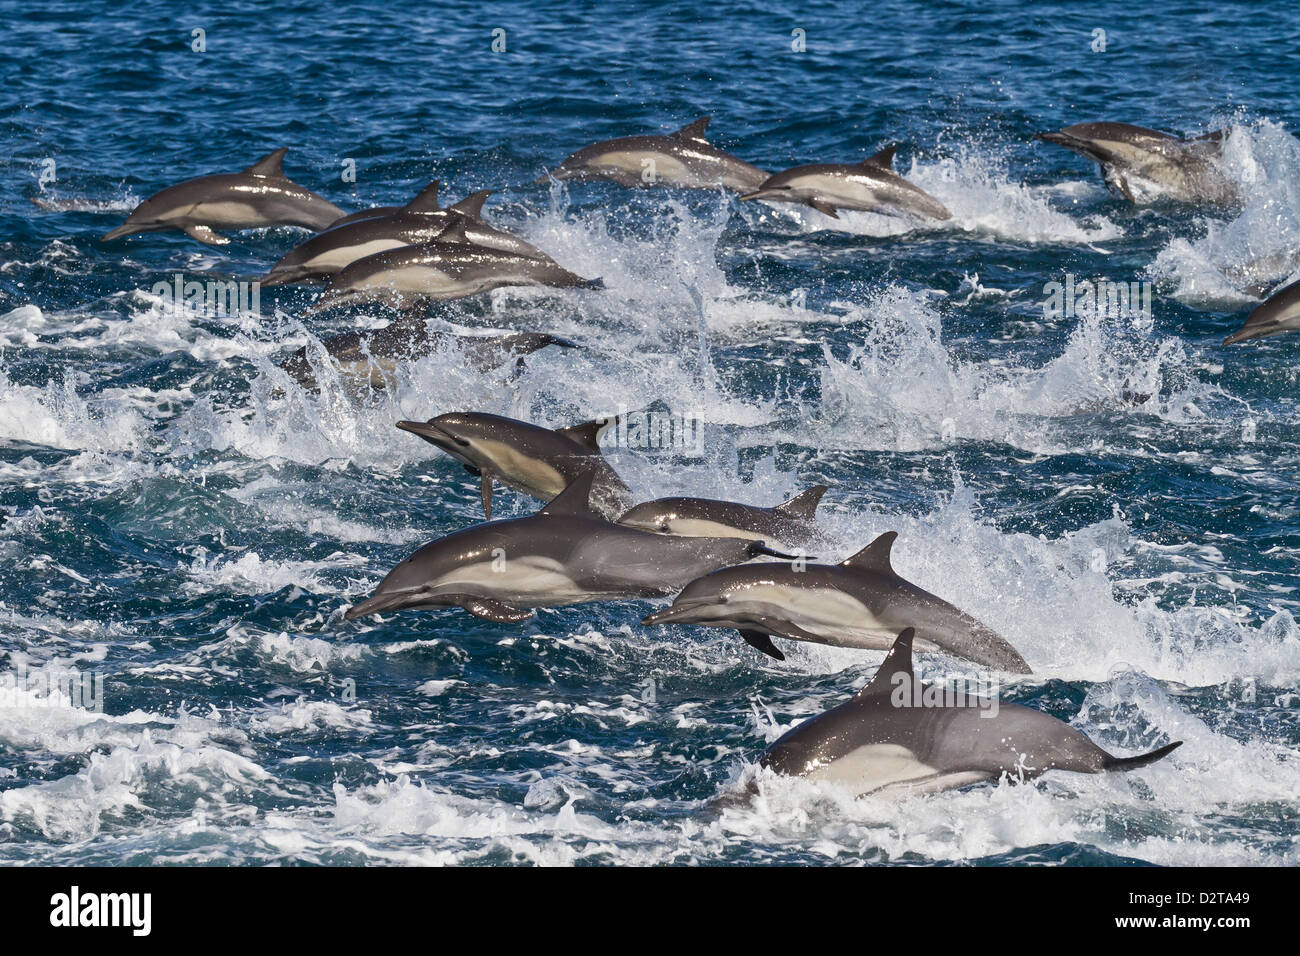 Long-beaked common dolphin pod, Isla San Esteban, Gulf of California (Sea of Cortez), Baja California, Mexico - Stock Image